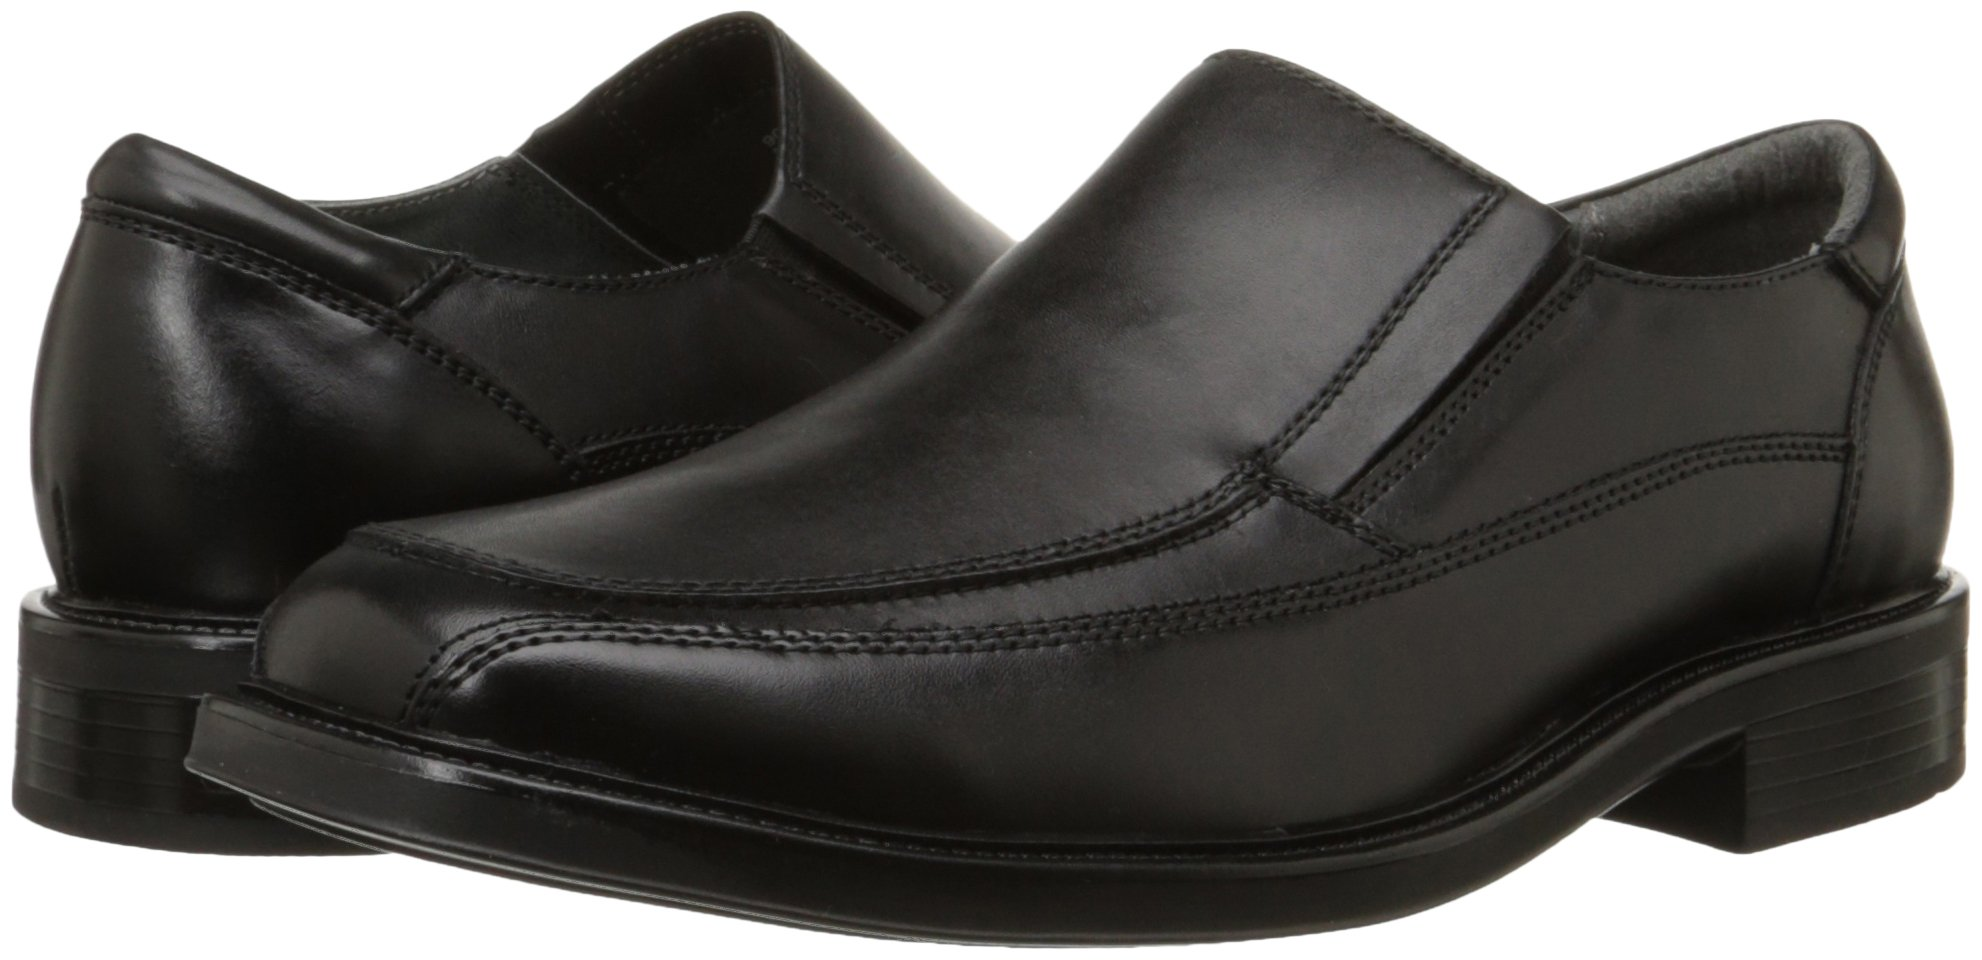 55cdd80da47ce Dockers Men's Proposal Leather Slip-on Loafer Shoe,Black,10 M US ...